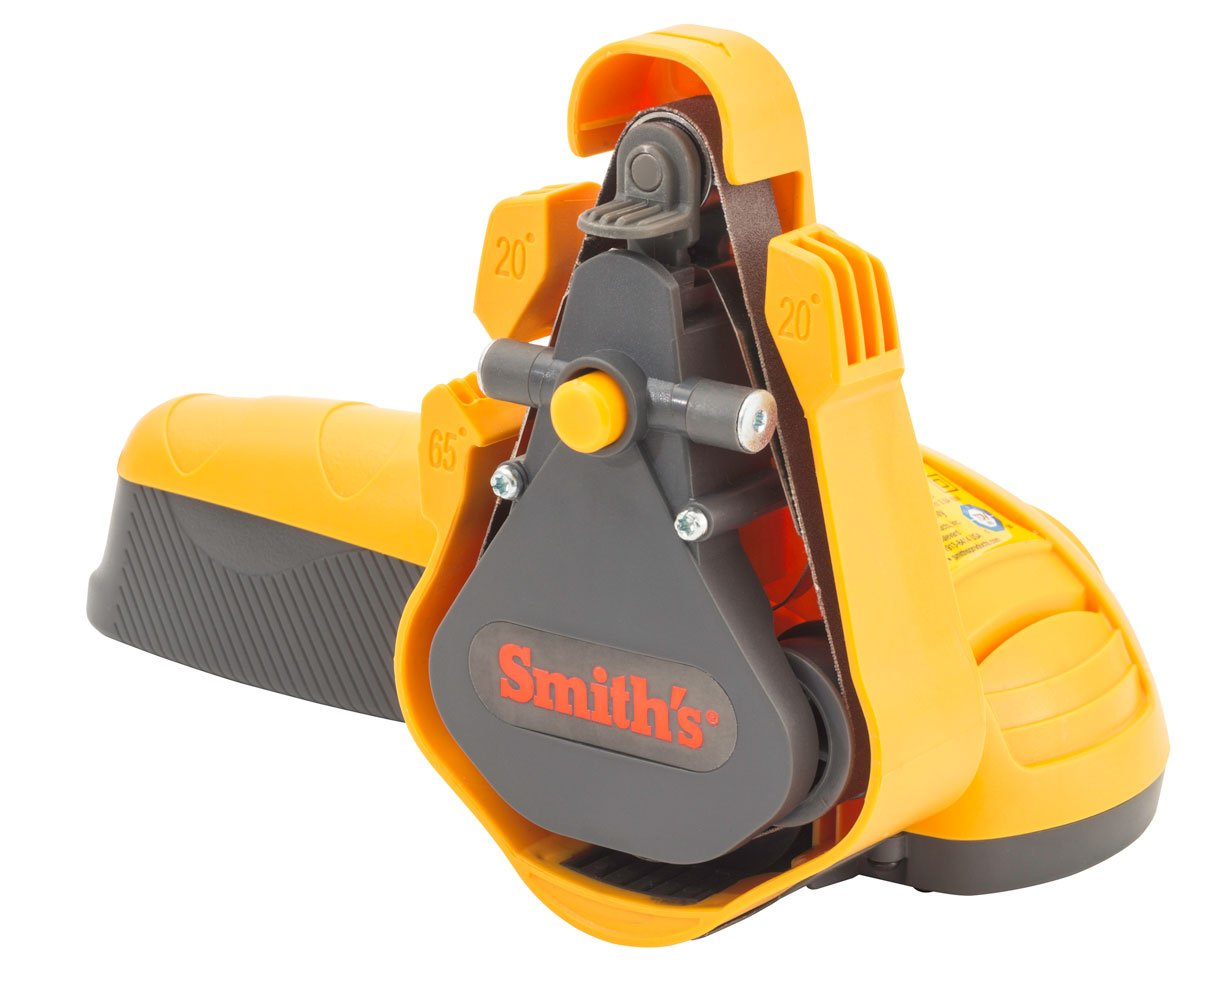 Smith's 50933 Electric Knife and Scissor Sharpener